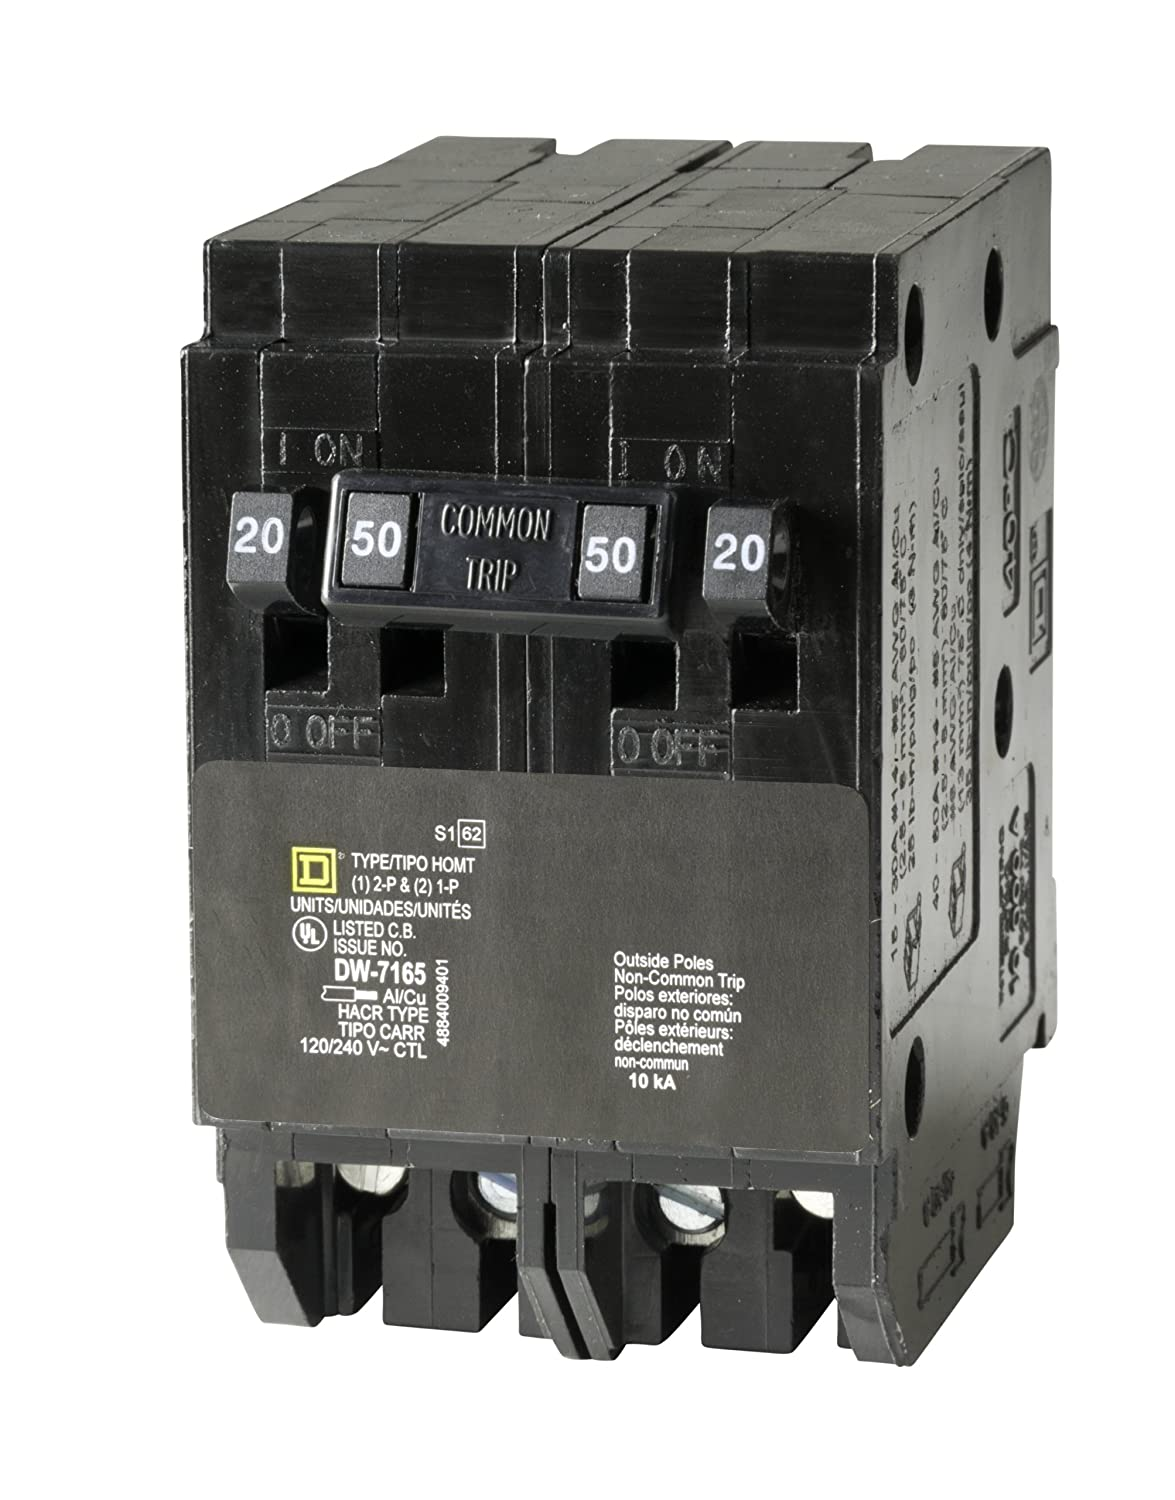 Square D By Schneider Electric Homt2020250cp Homeline 2 20 Amp How To Install A 220v Circuit Breaker In Panel Do It Yourself Single Pole 1 50 Two Quad